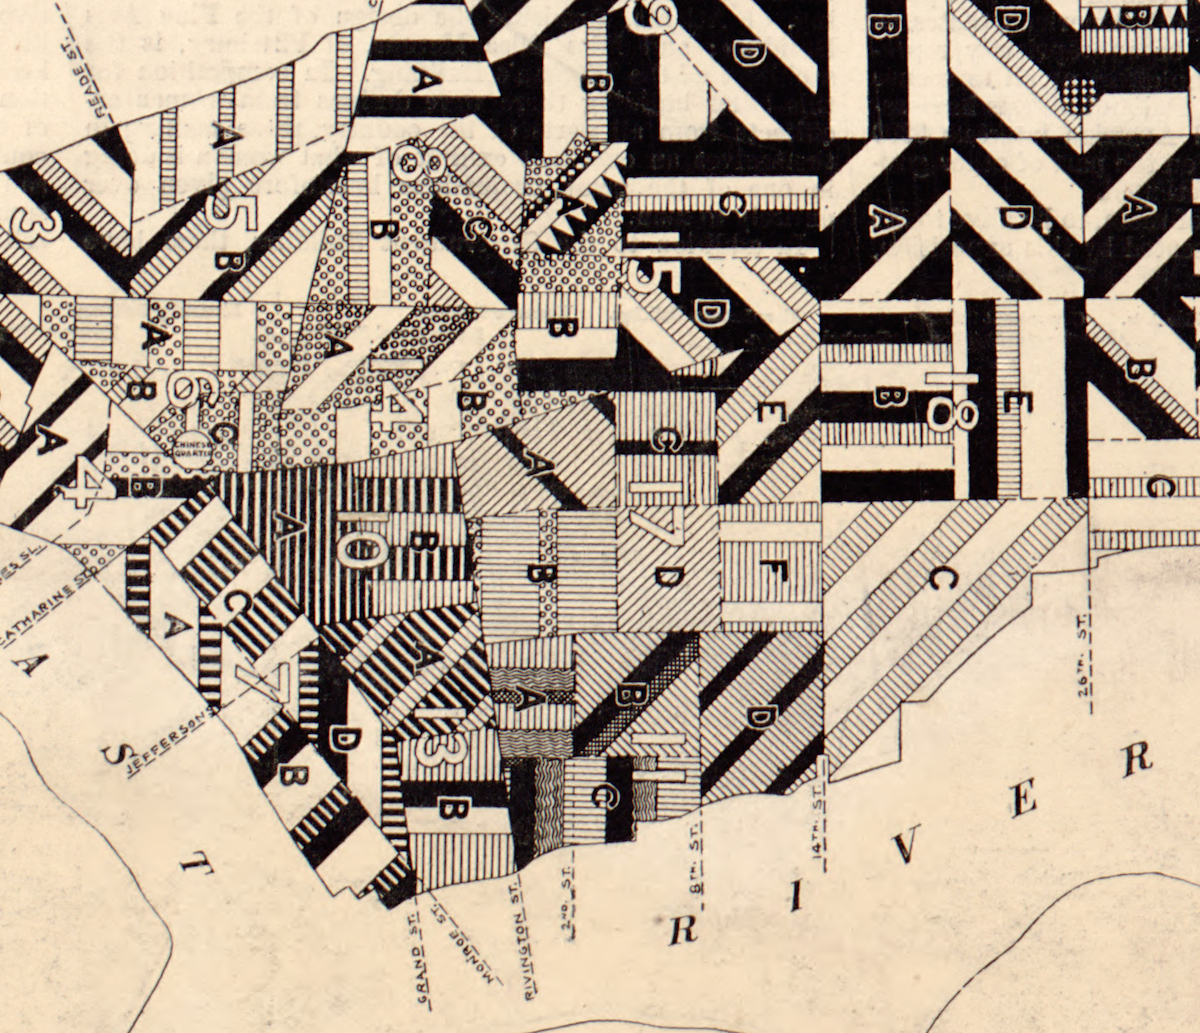 Pierce Sanitary Map 1894 detail